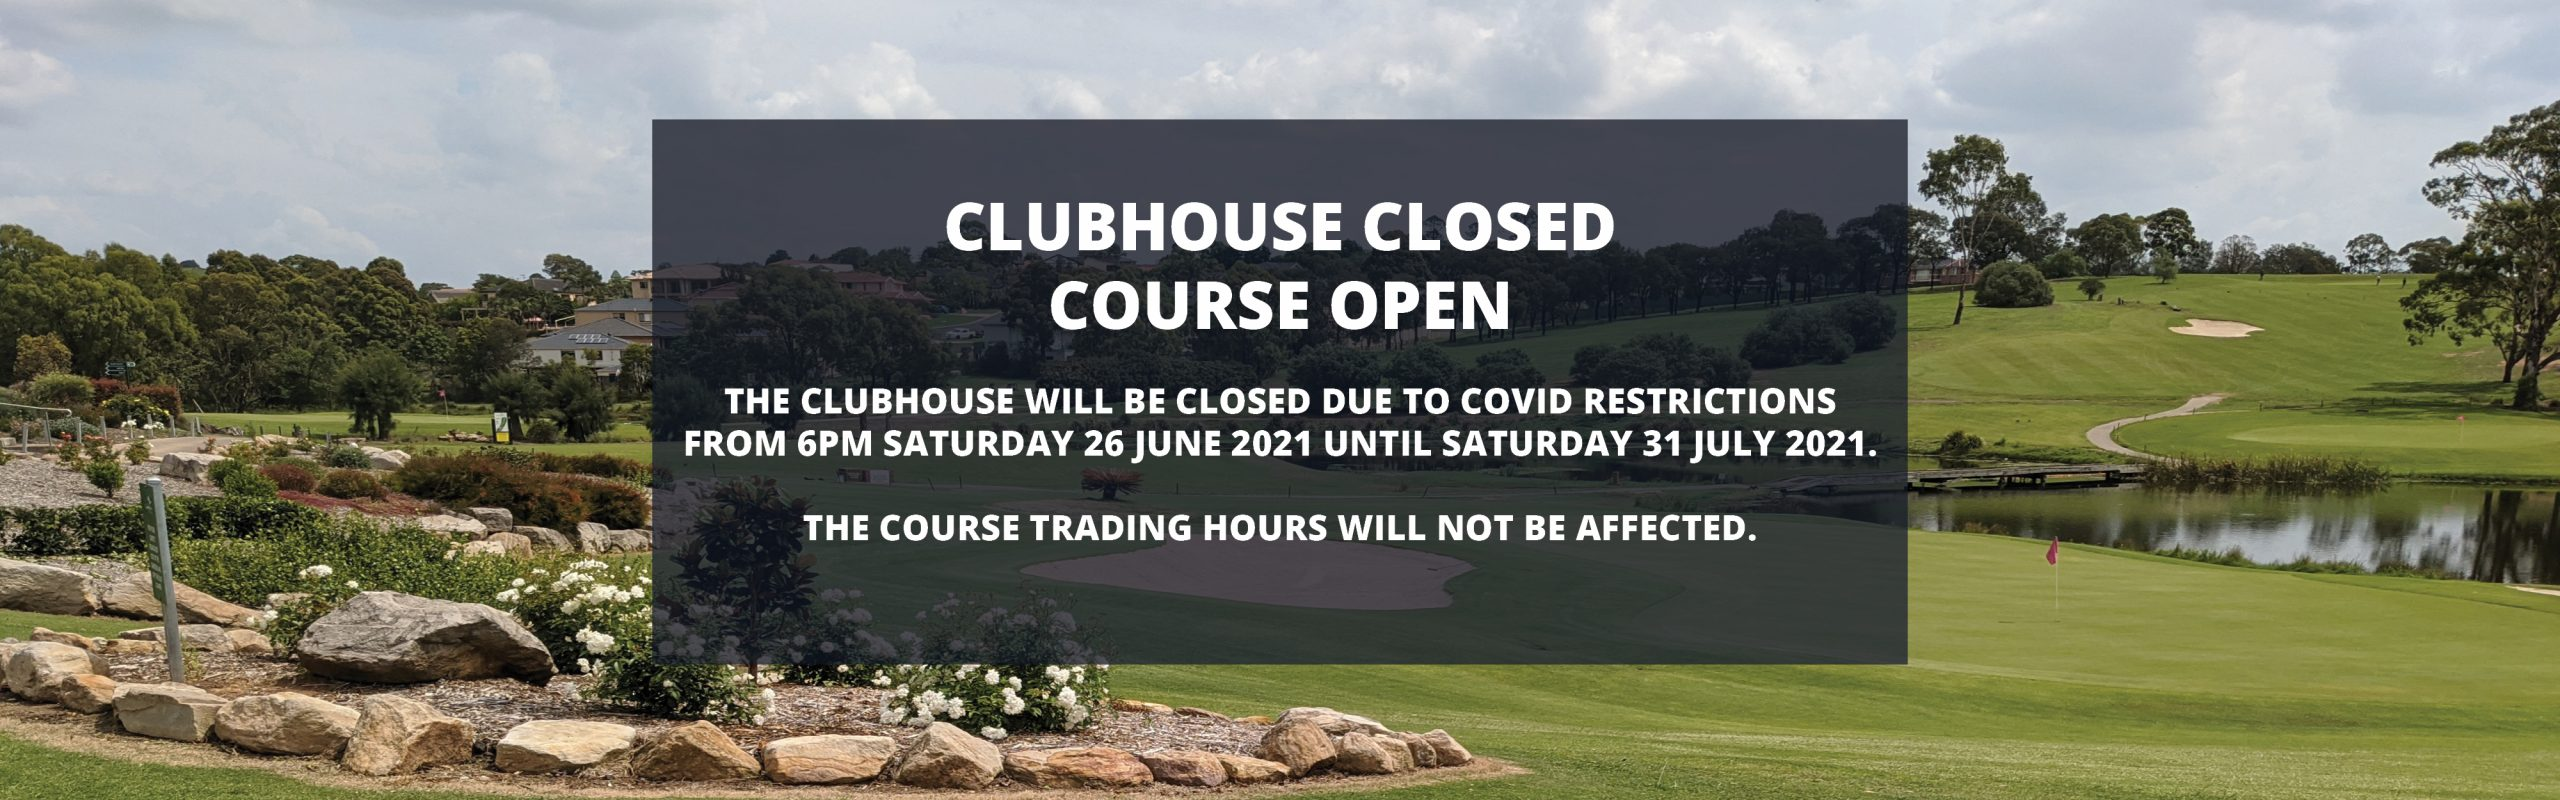 Clubhouse closed course open home banner